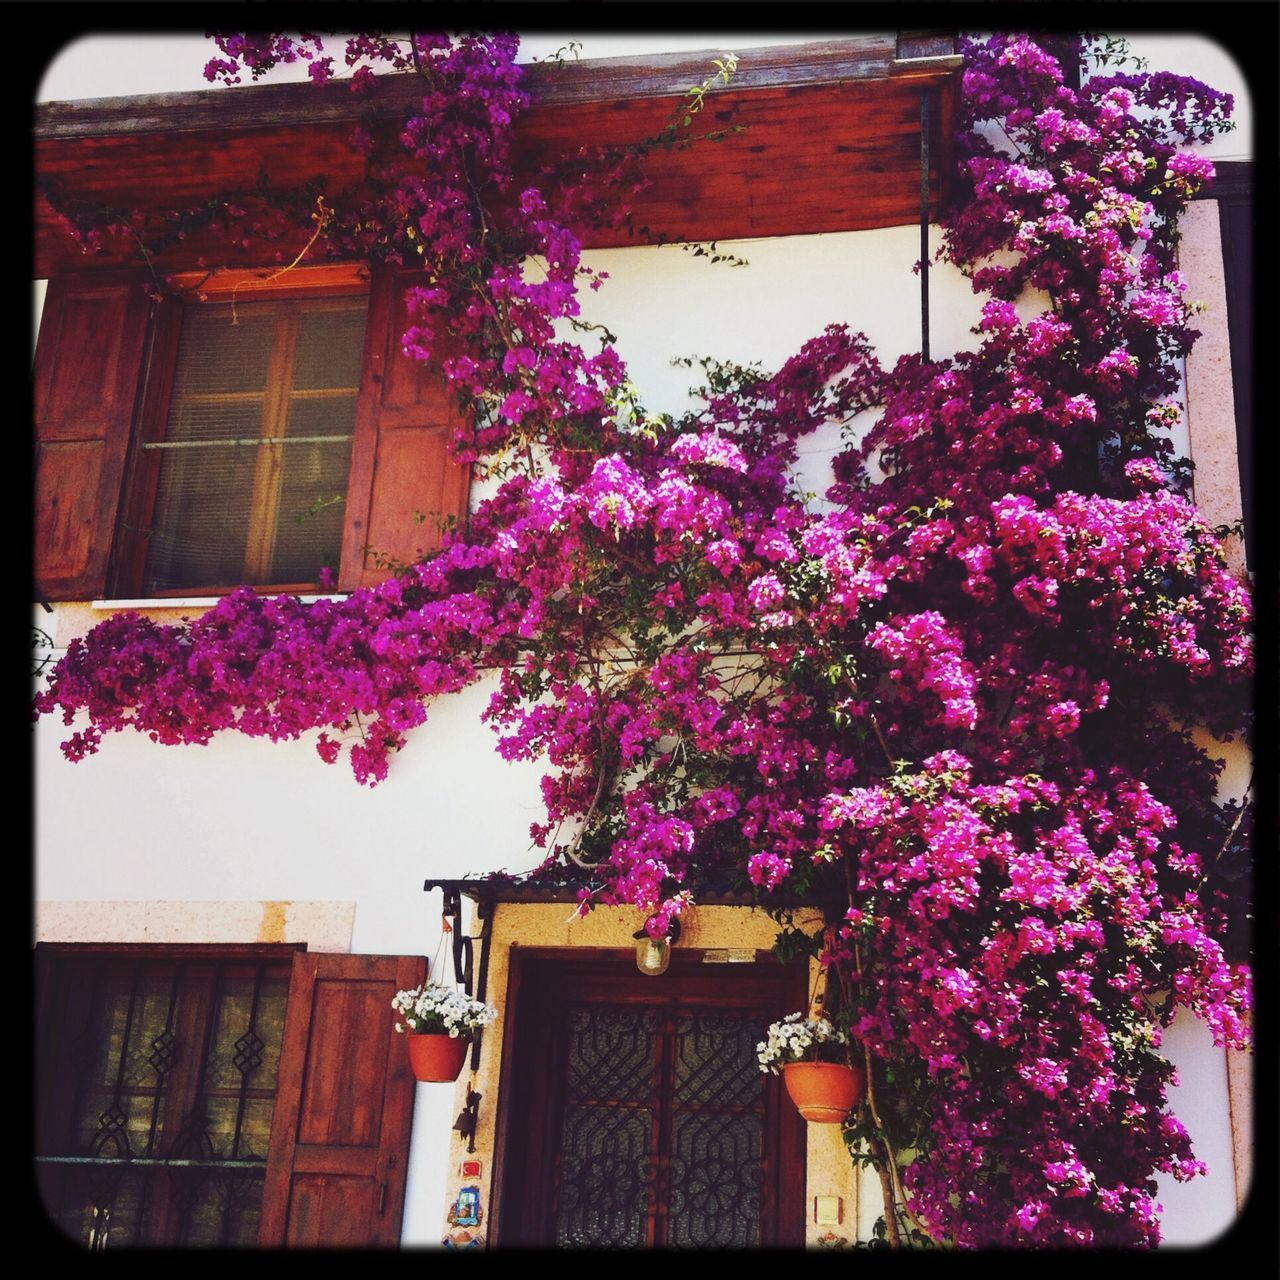 Flower Tree In Front Of Building